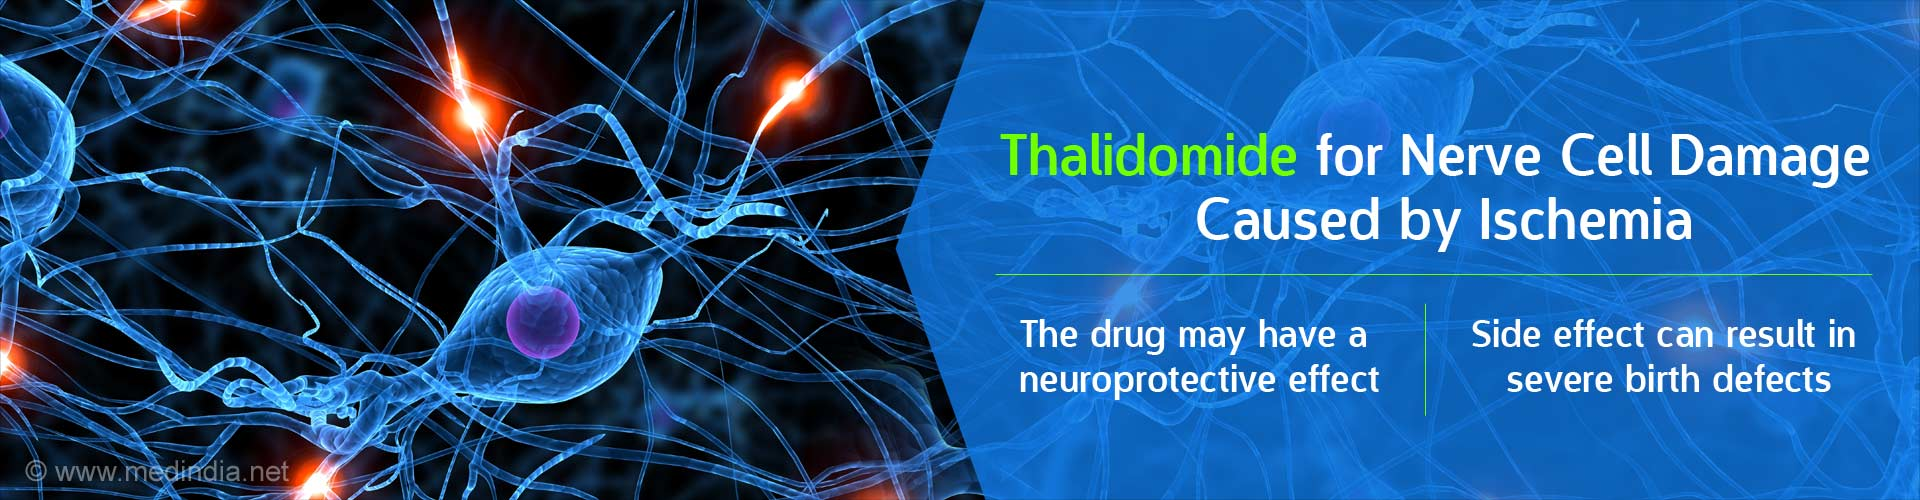 Nerve Cell Damage Caused by Ischemia may be Treated With Thalidomide